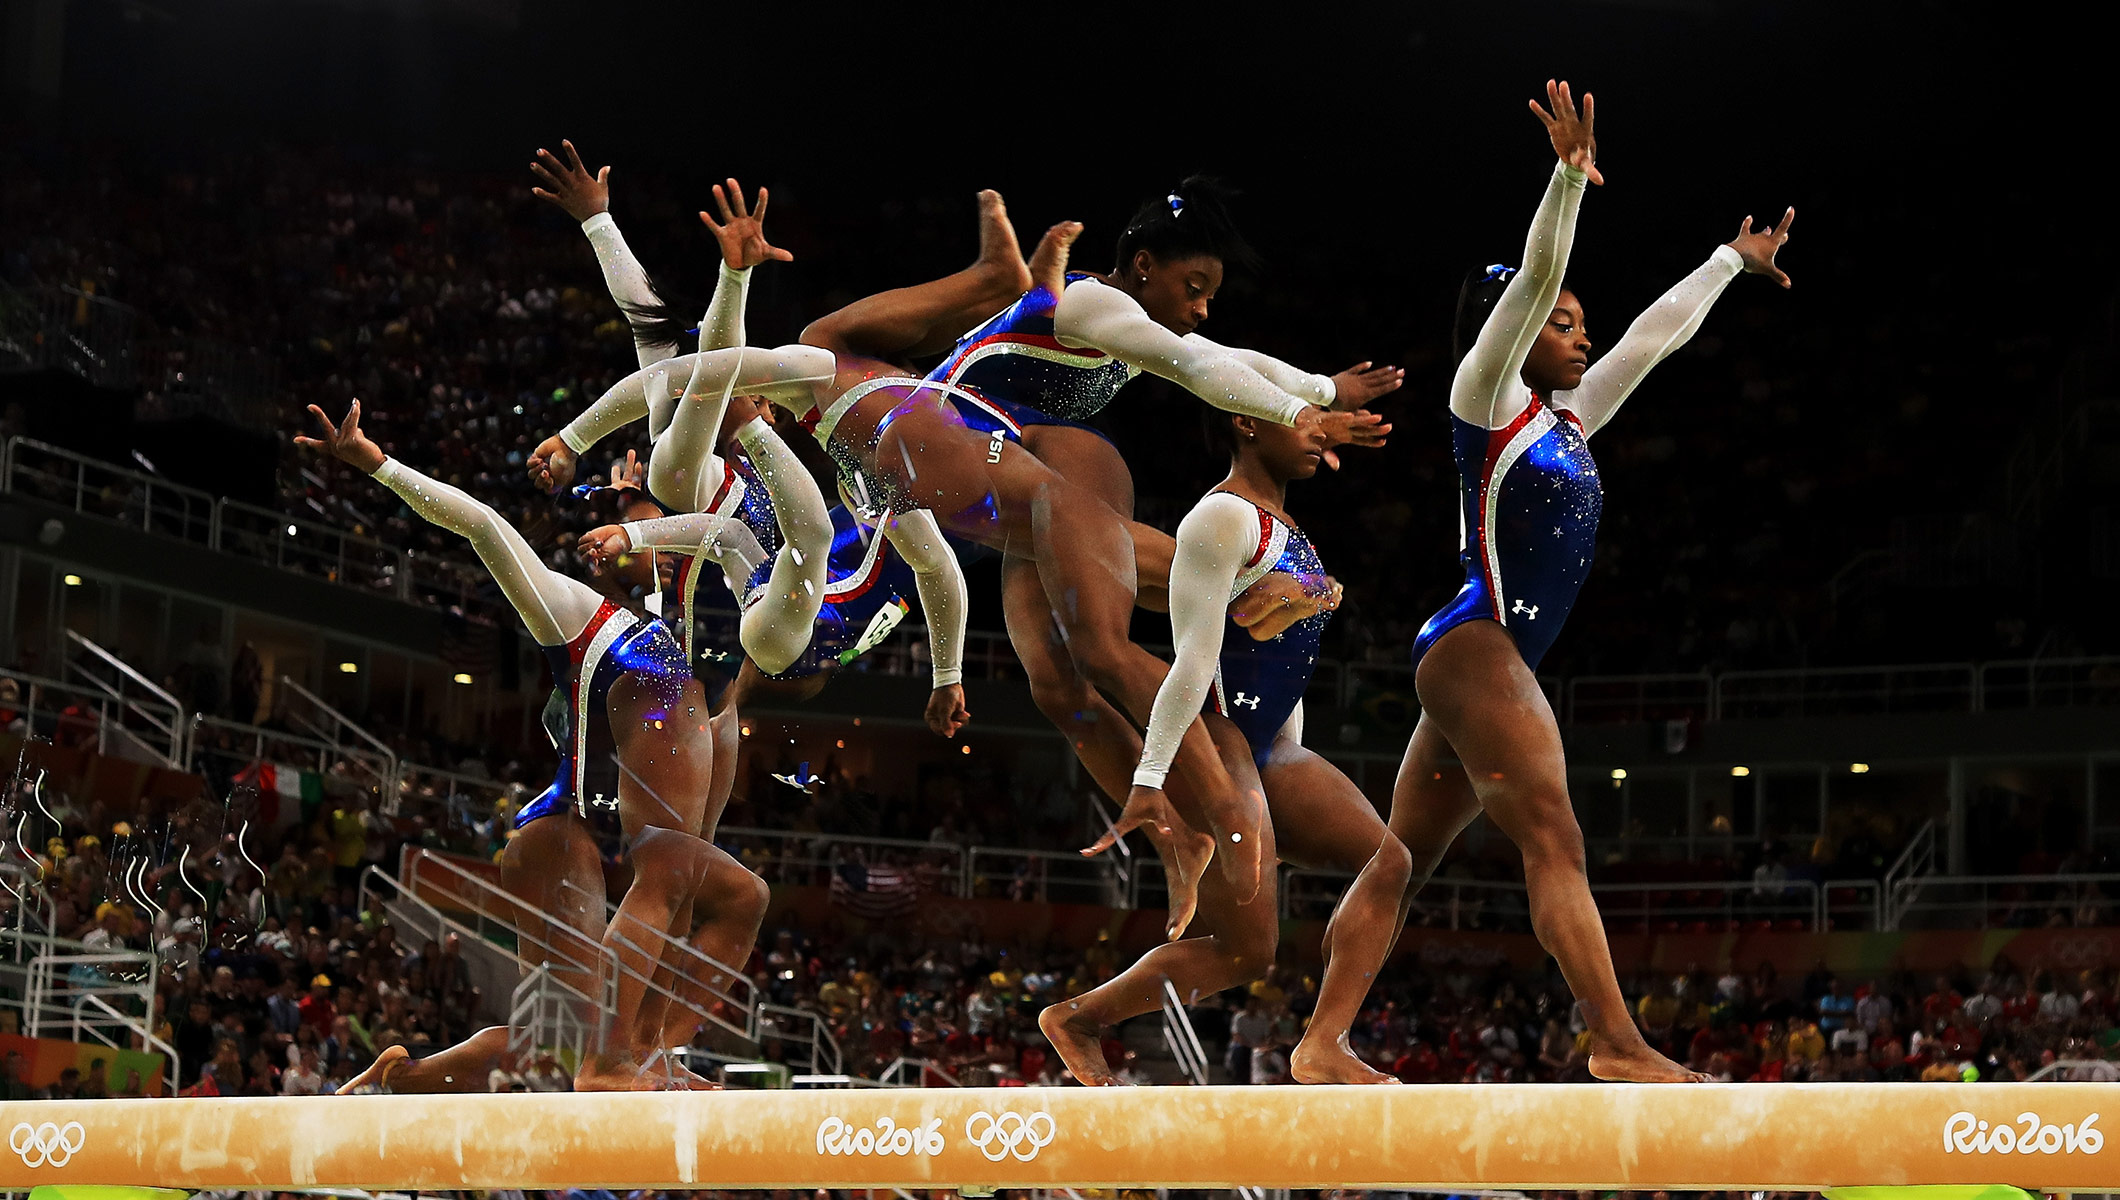 simone biles creates artistic gymnastics history in rio - olympic news